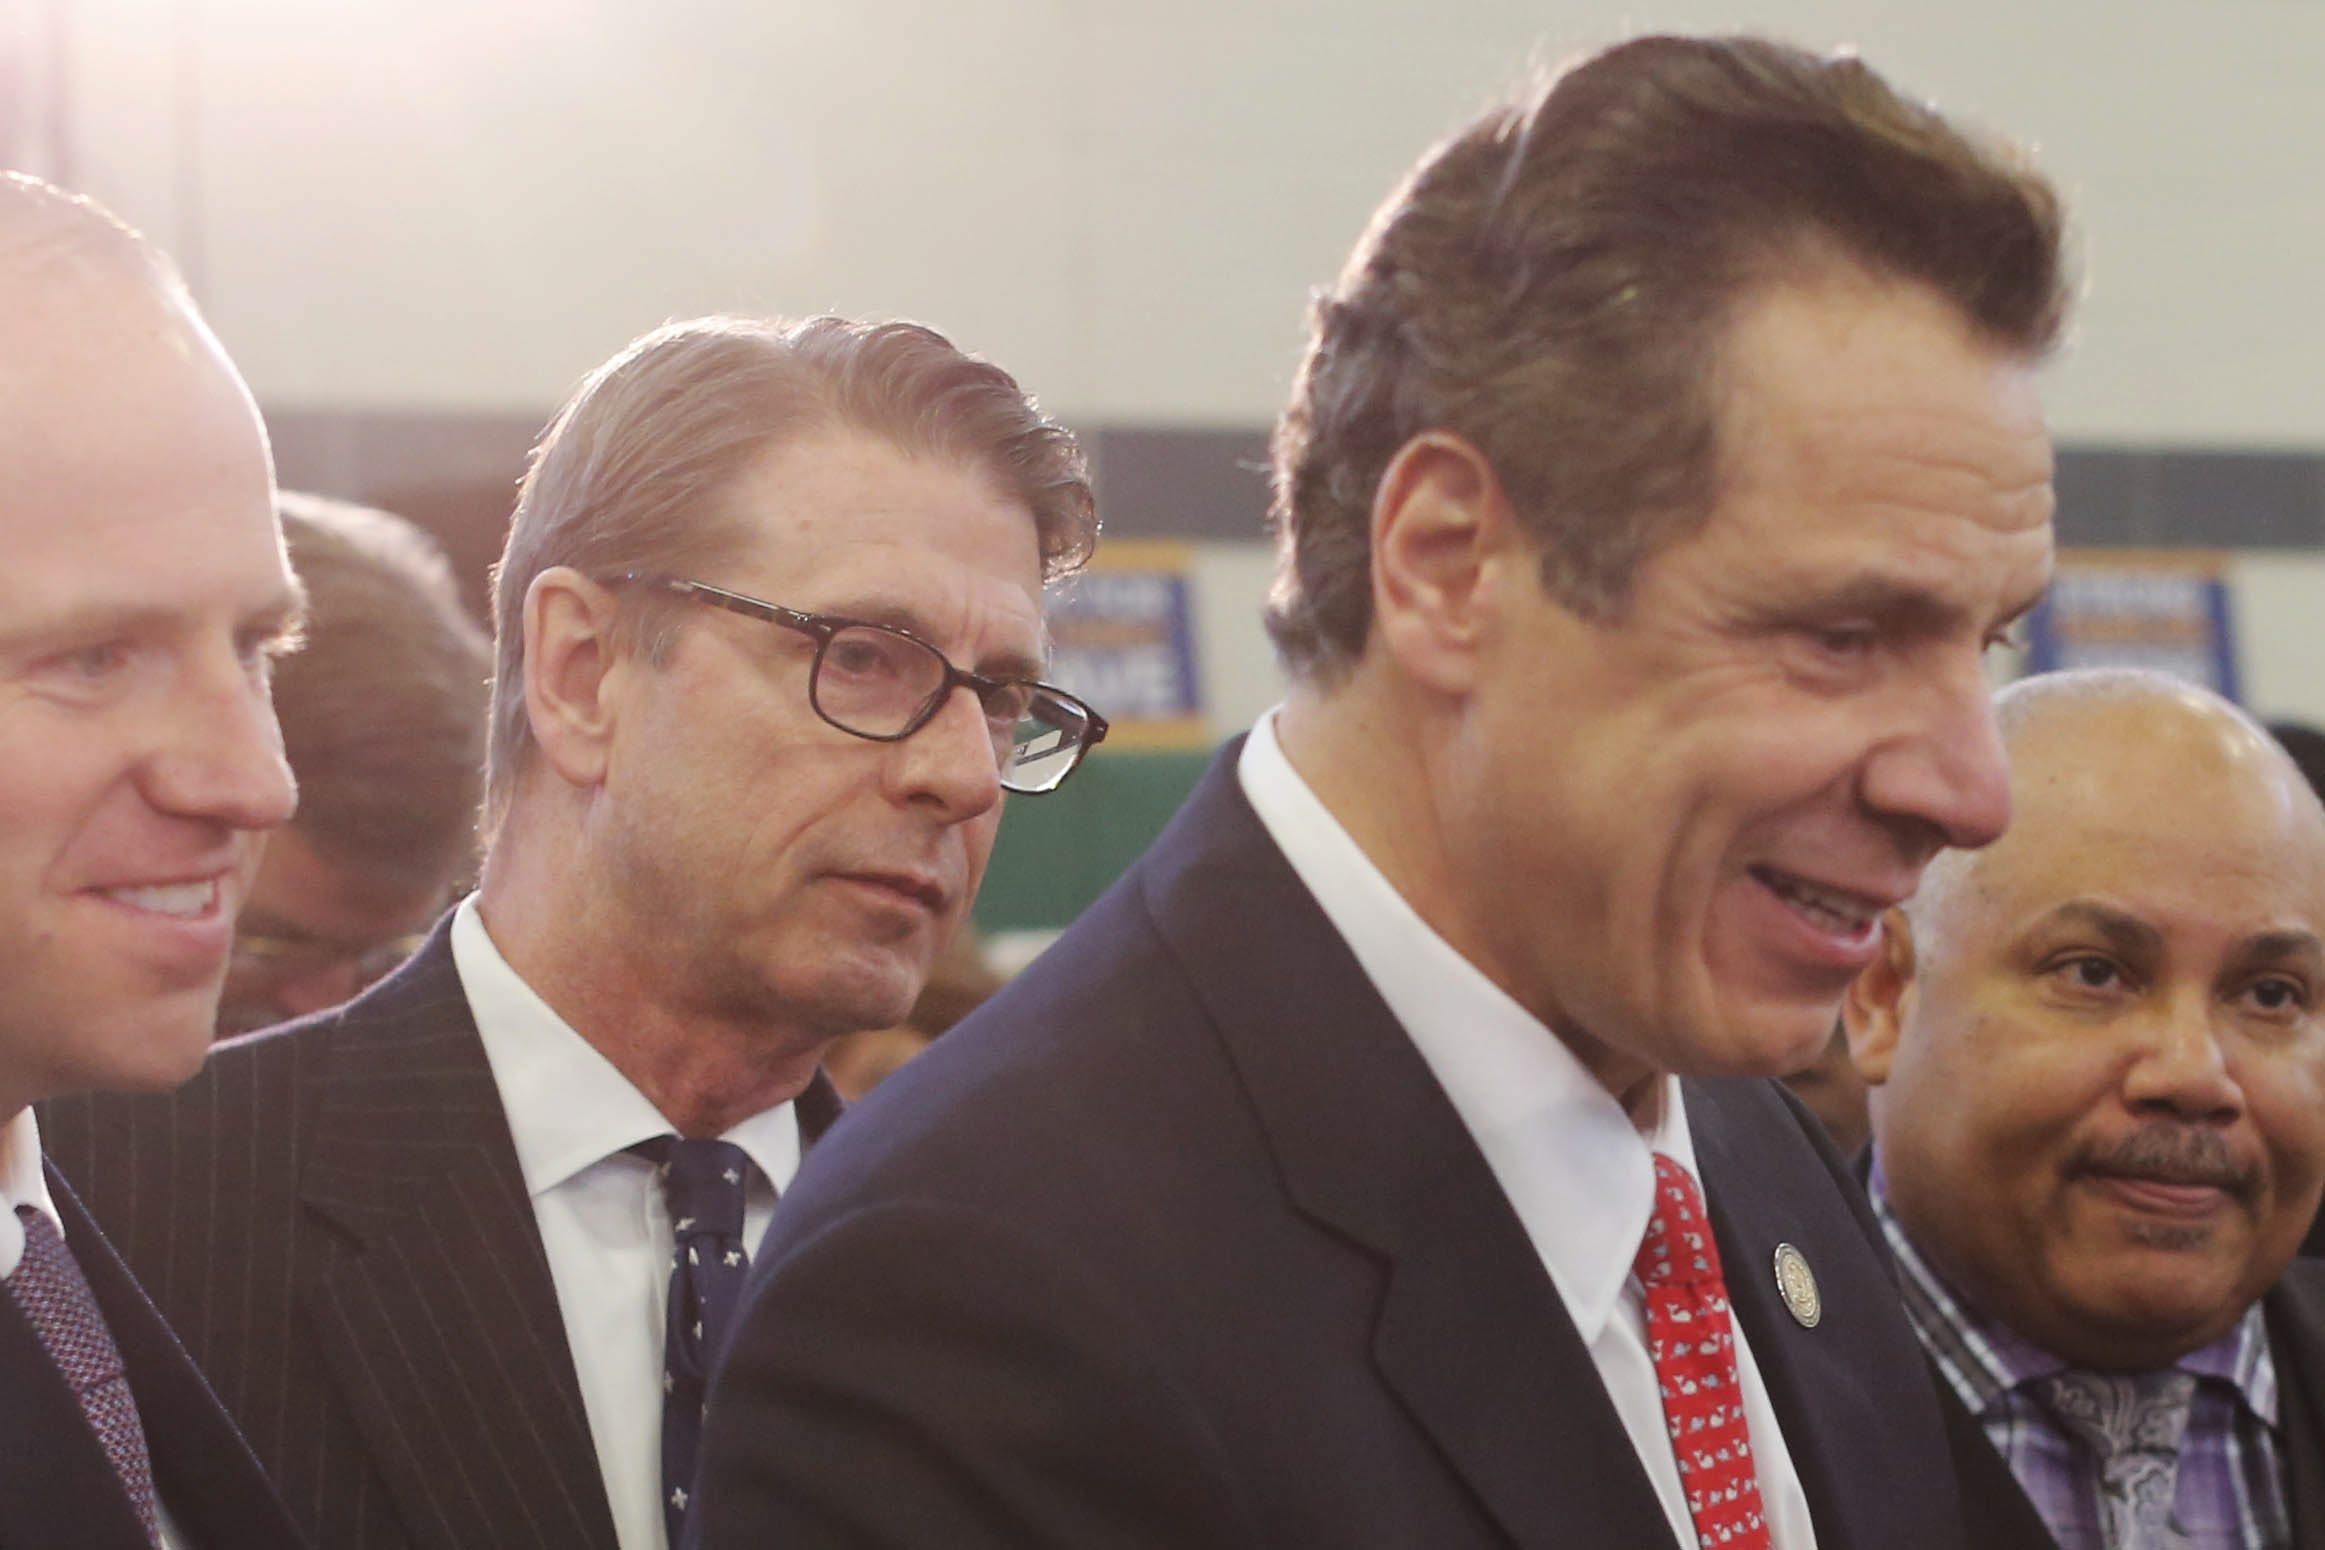 Peter Cutler, left, working as an aide to New York Gov. Andrew Cuomo, right, stands at the governor's side as he mingles with dignitaries following an event to promote paid family leave at the Delevan-Grider Community Center in Buffalo on Feb. 17. (Derek Gee/News file photo)